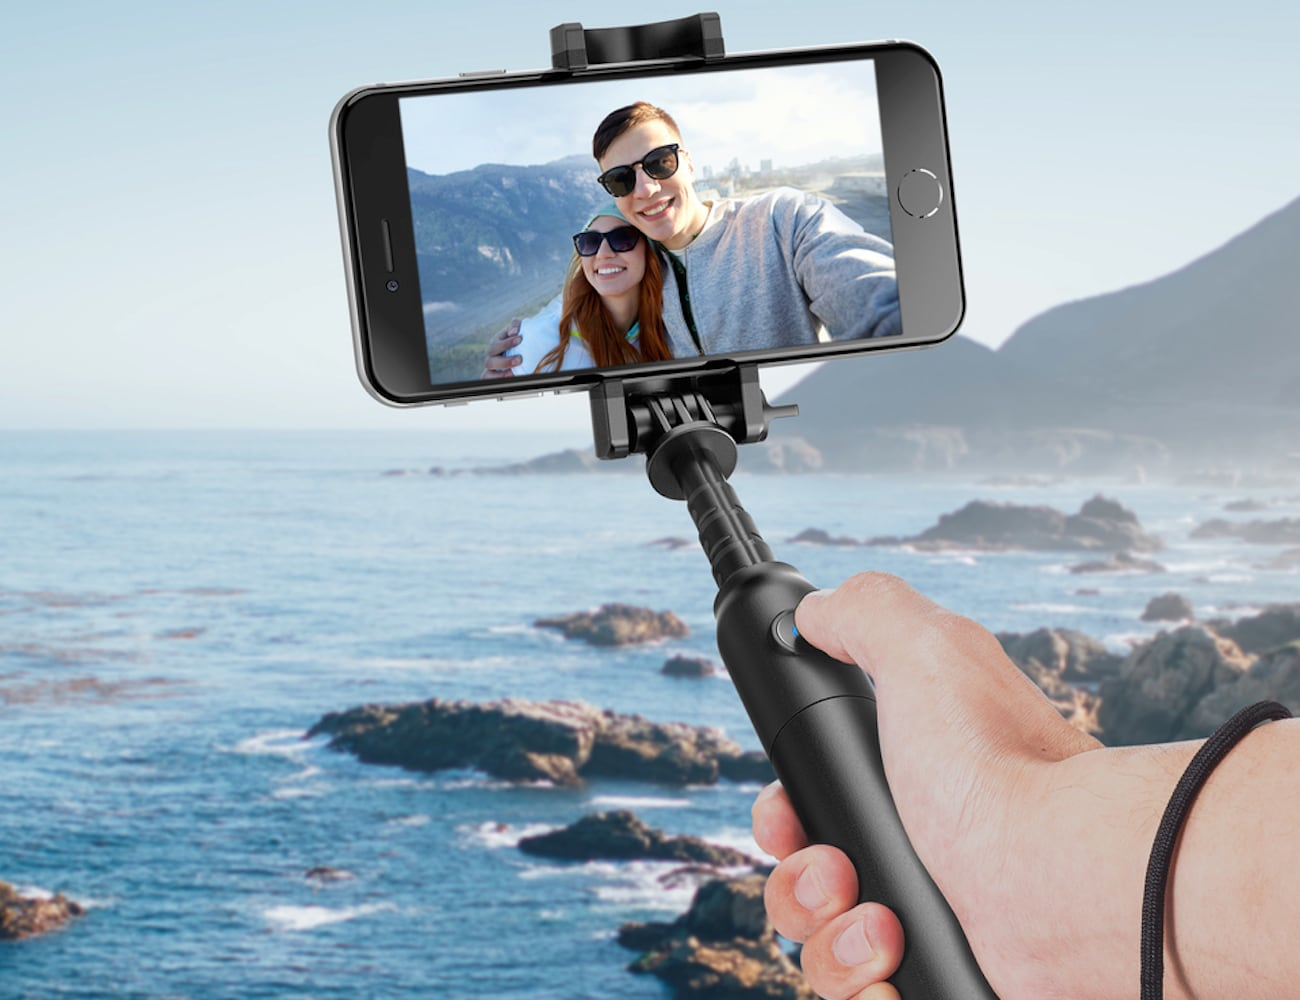 Anker Selfie Stick Bluetooth Extendable Monopod becomes more than 2 feet long